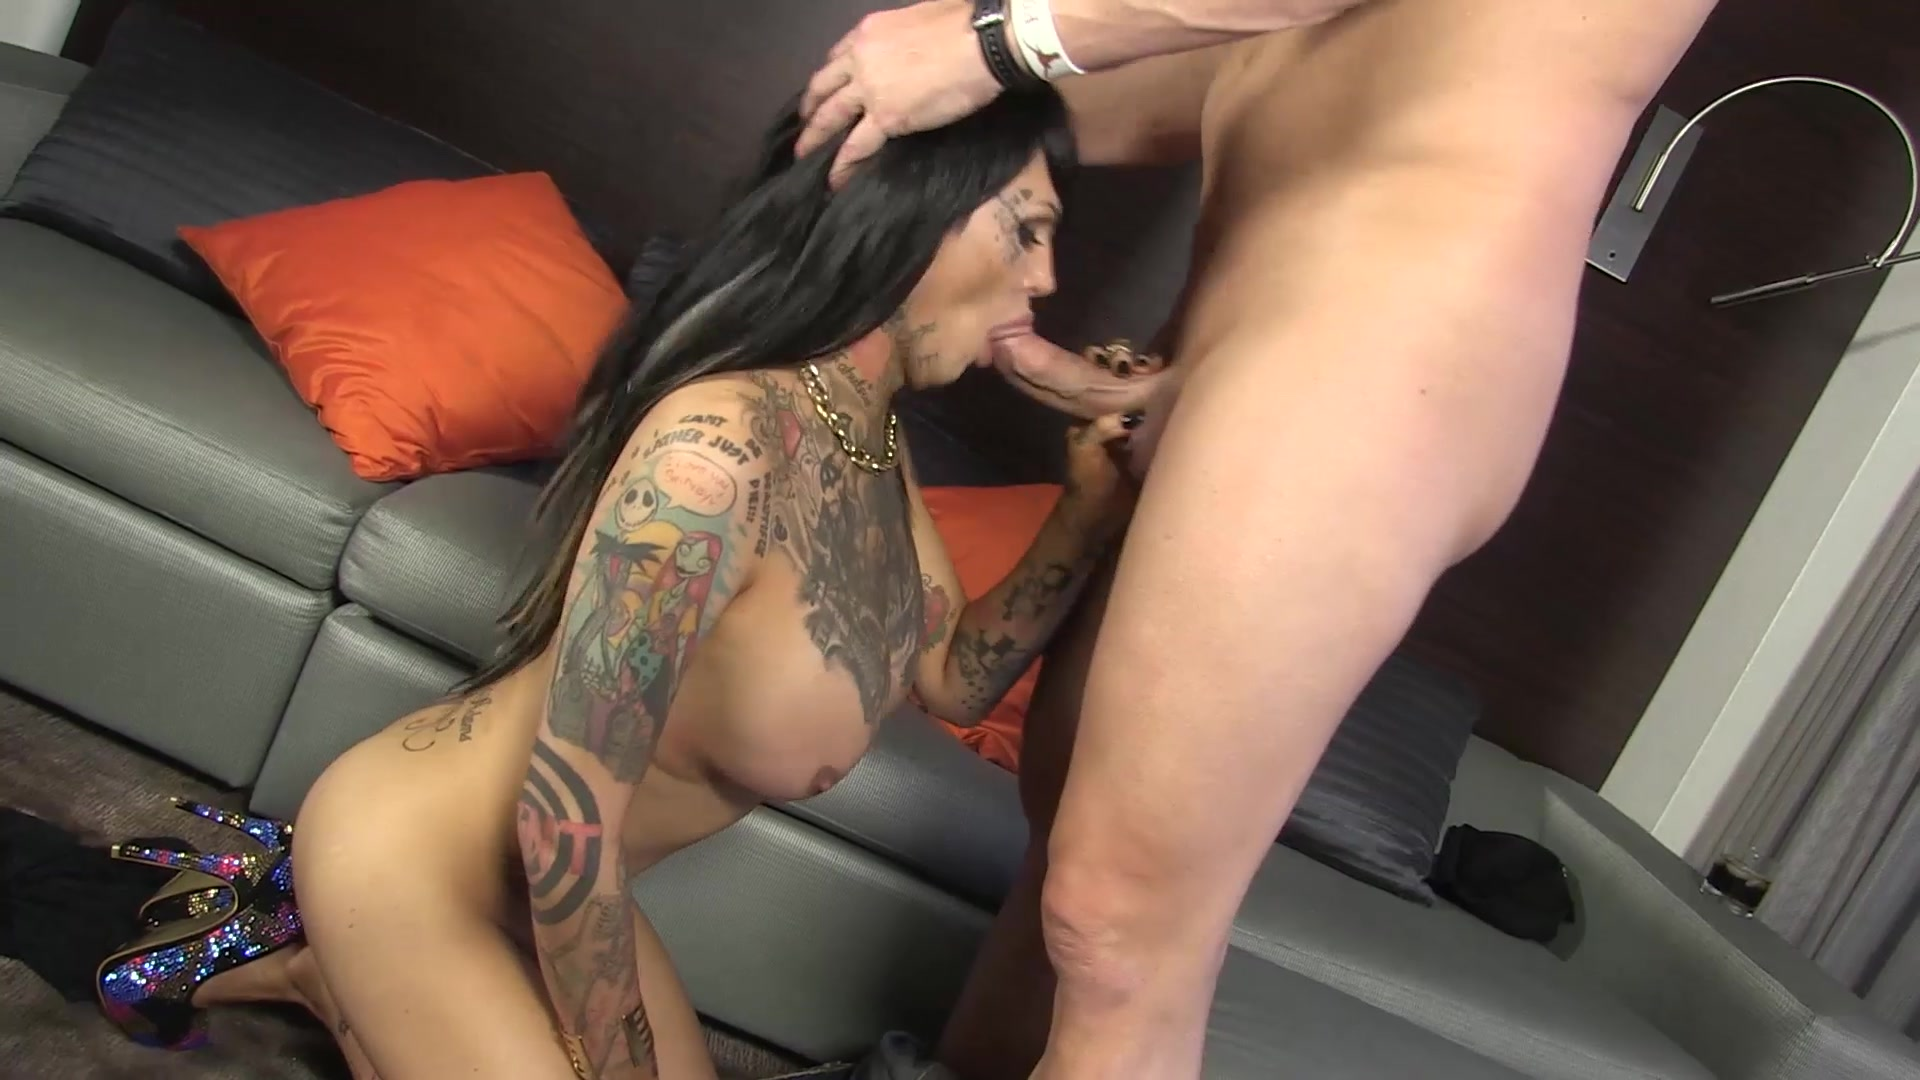 Marley recommend best of 2 nurse shemale sex tranny